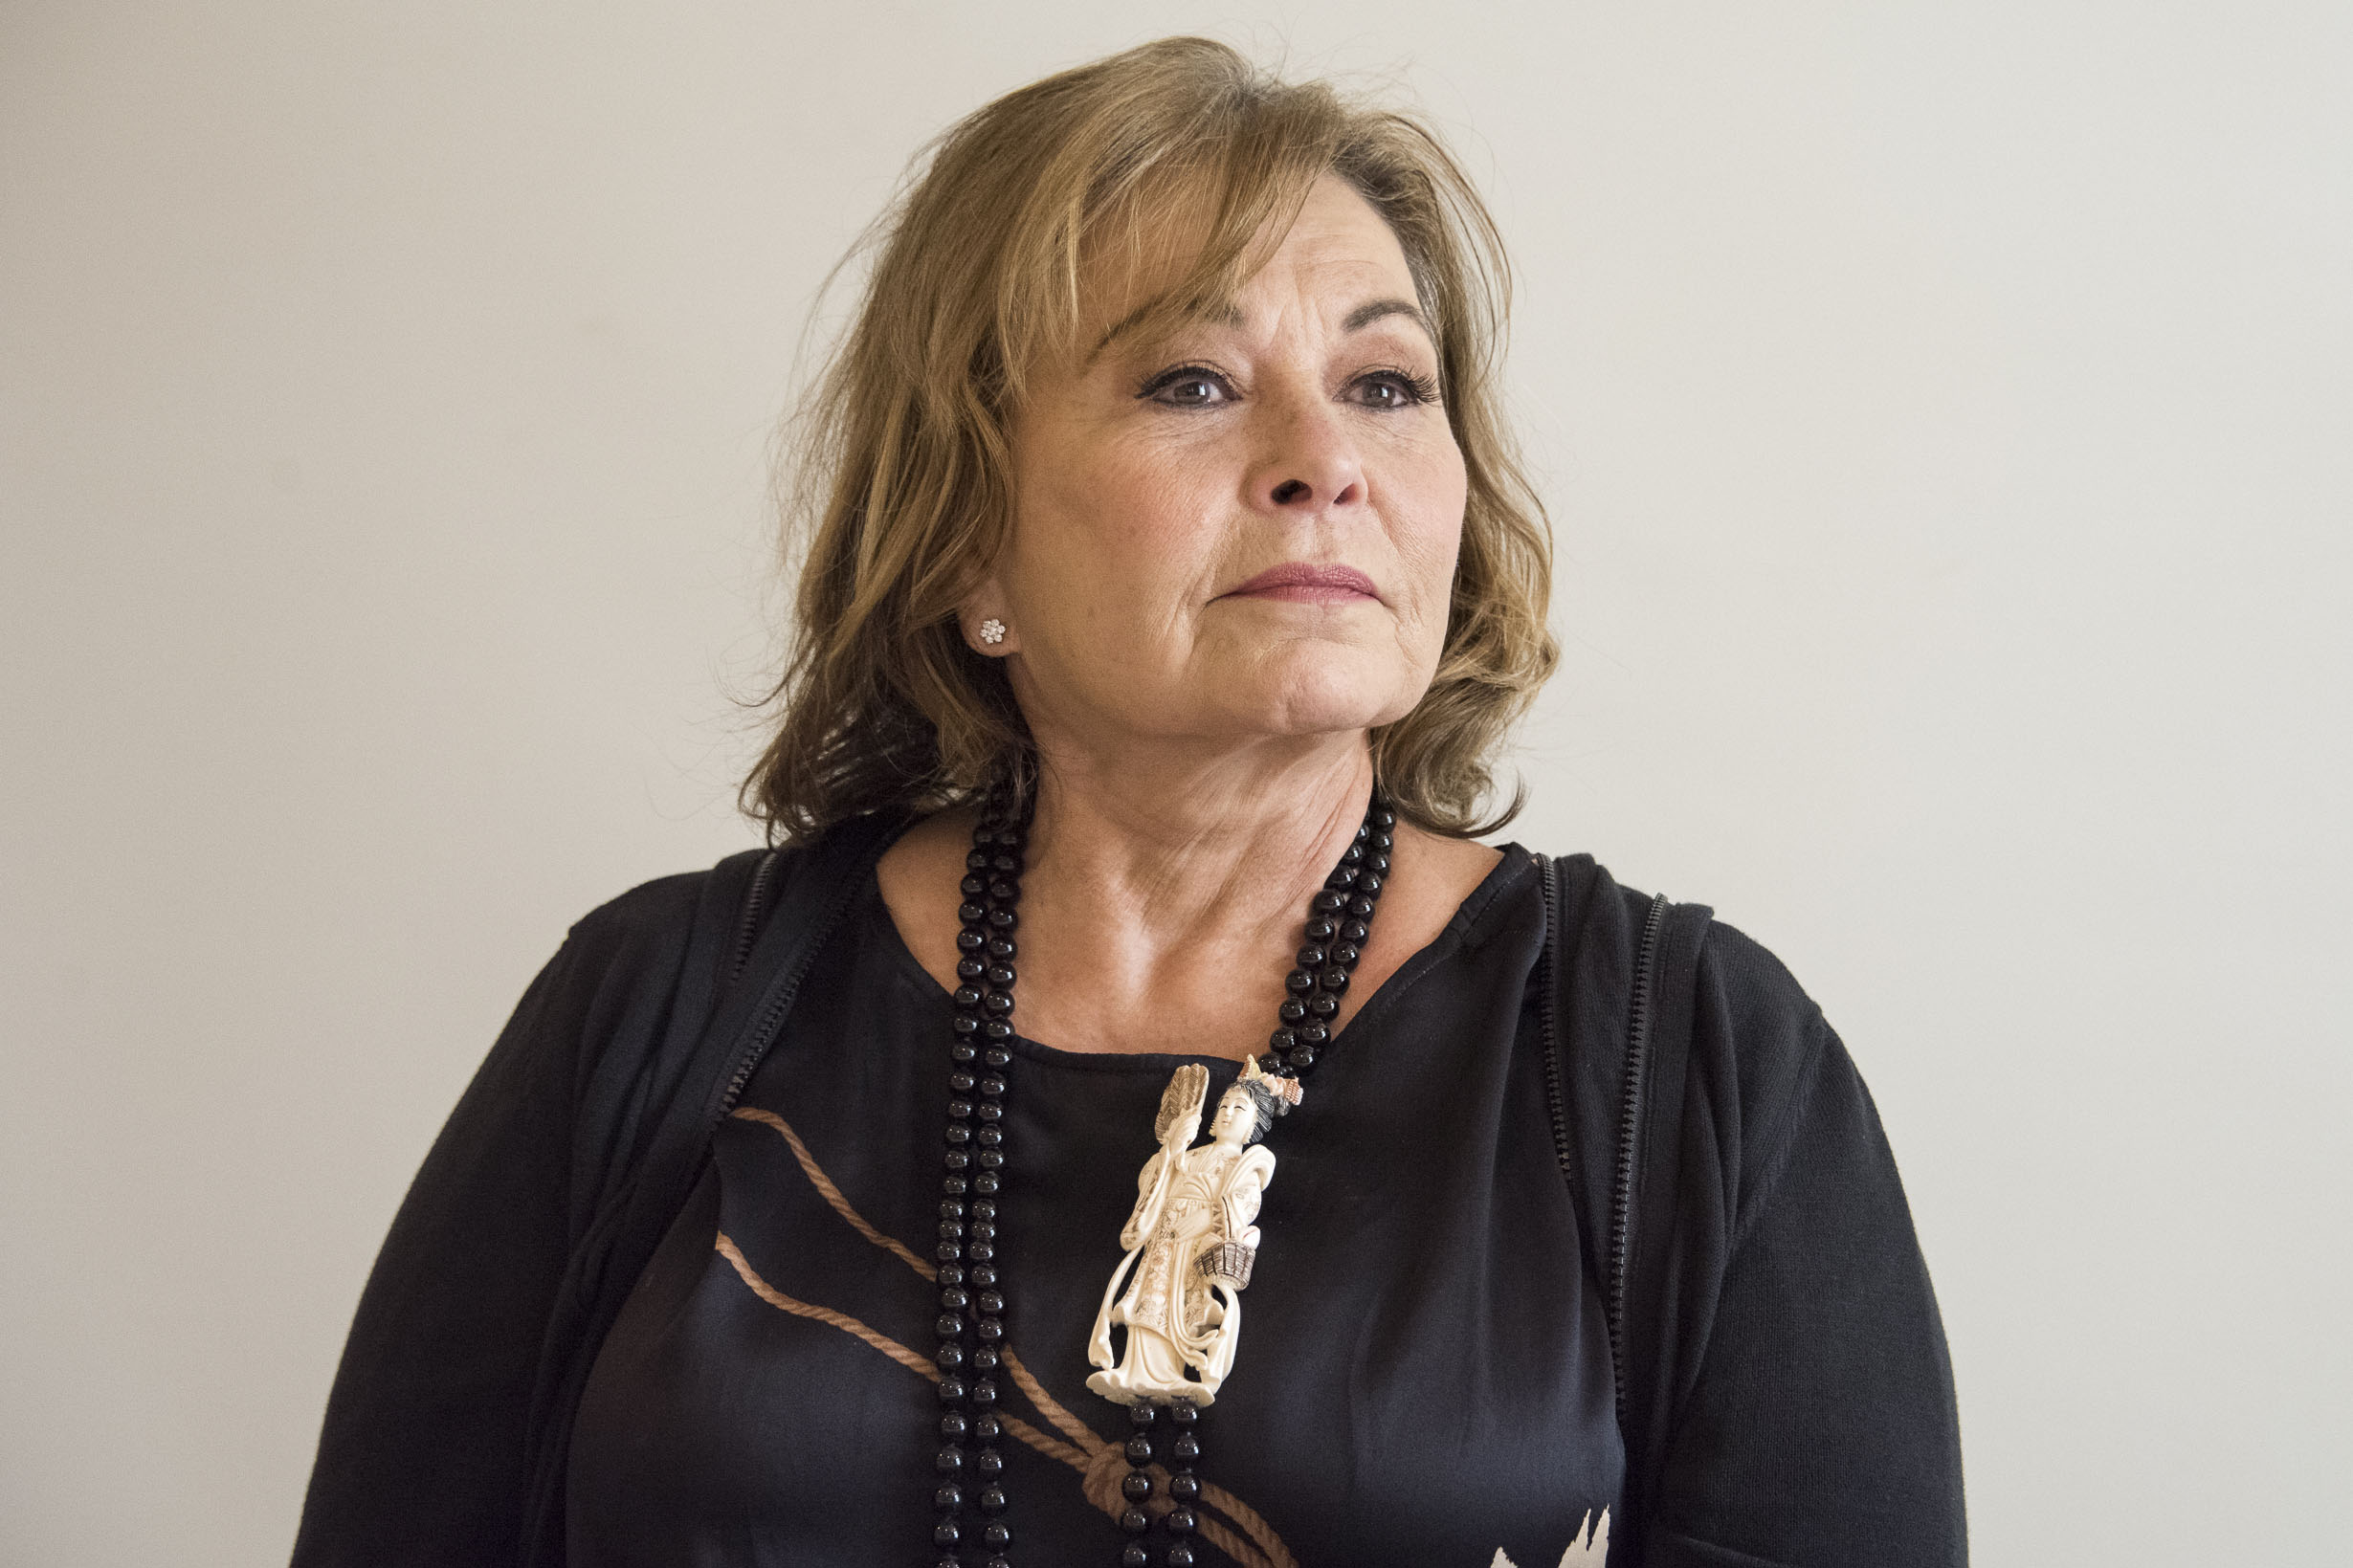 Roseanne Barr says her Twitter rant was insensitive, not